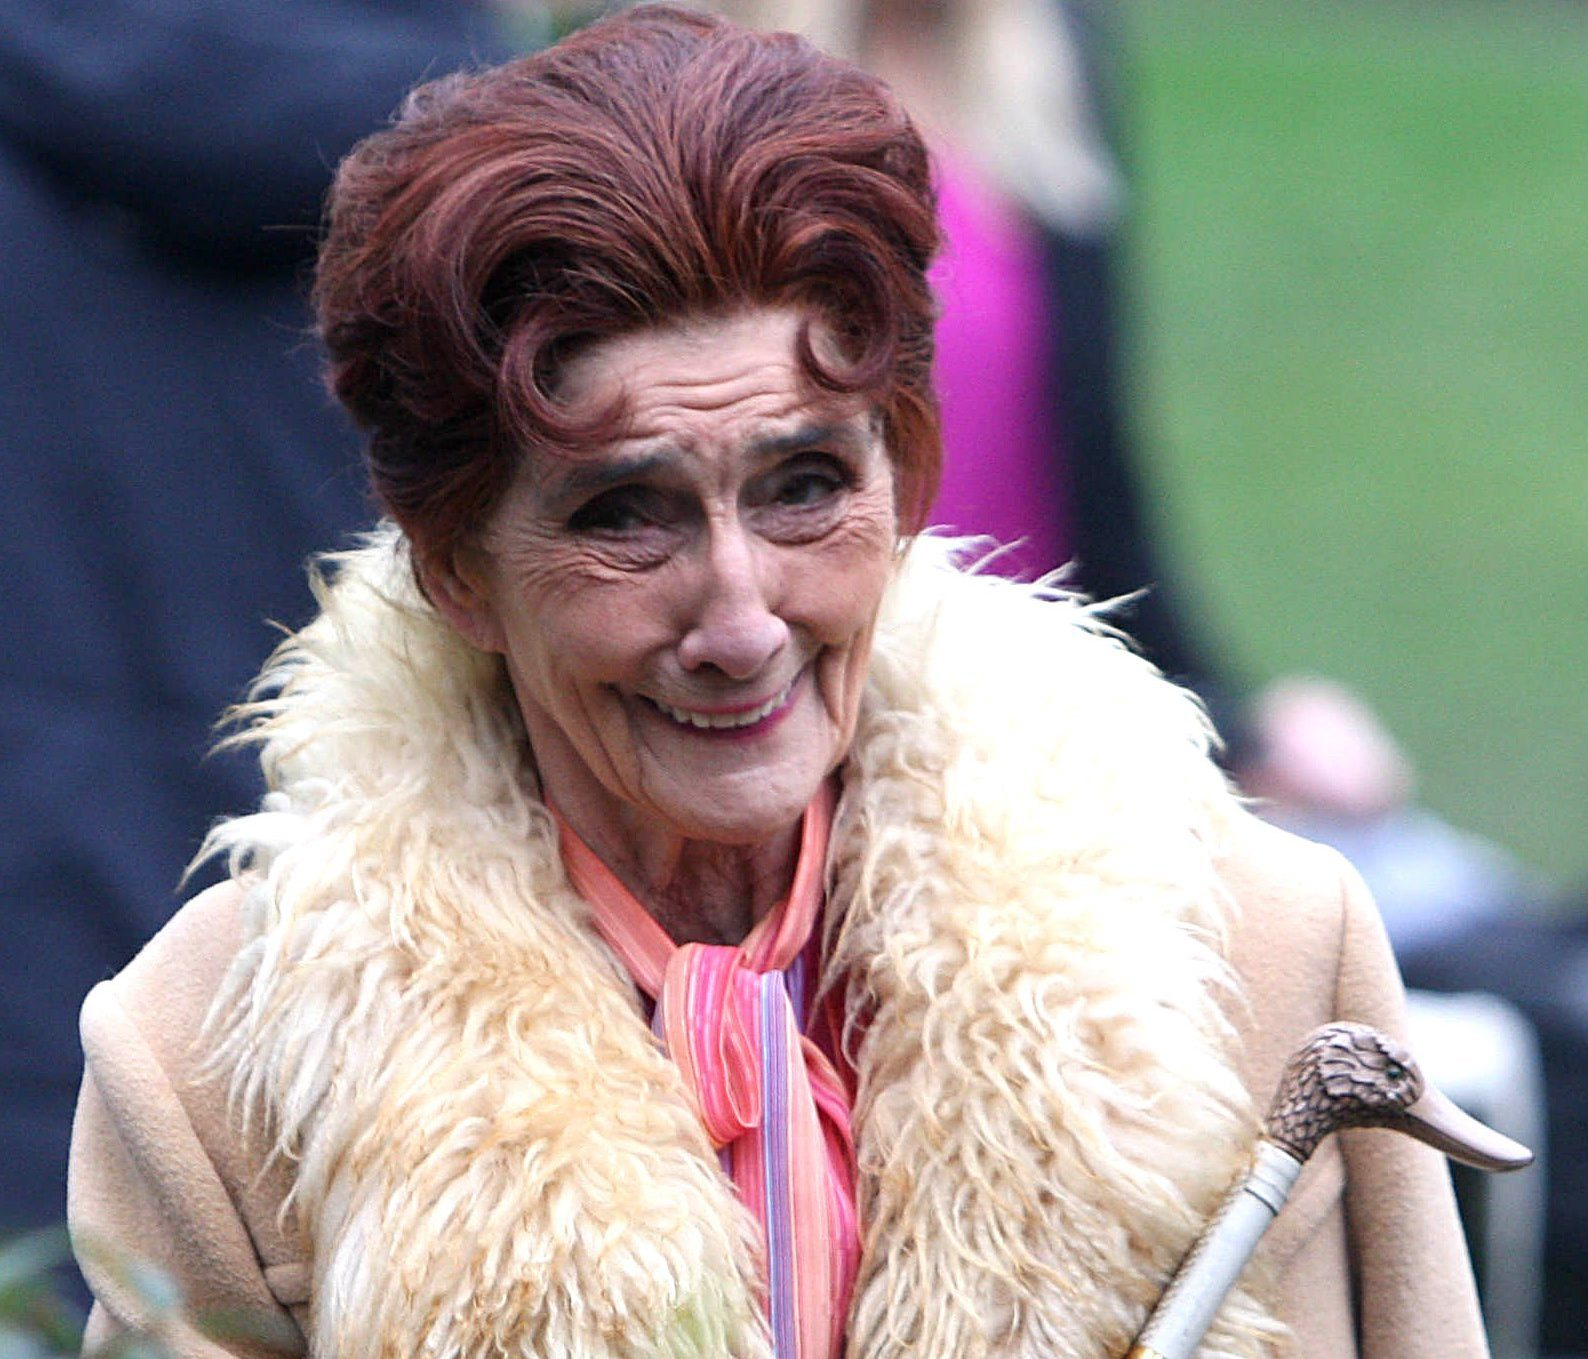 EastEnders' June Brown starting to go blind and can't recognise friends at parties